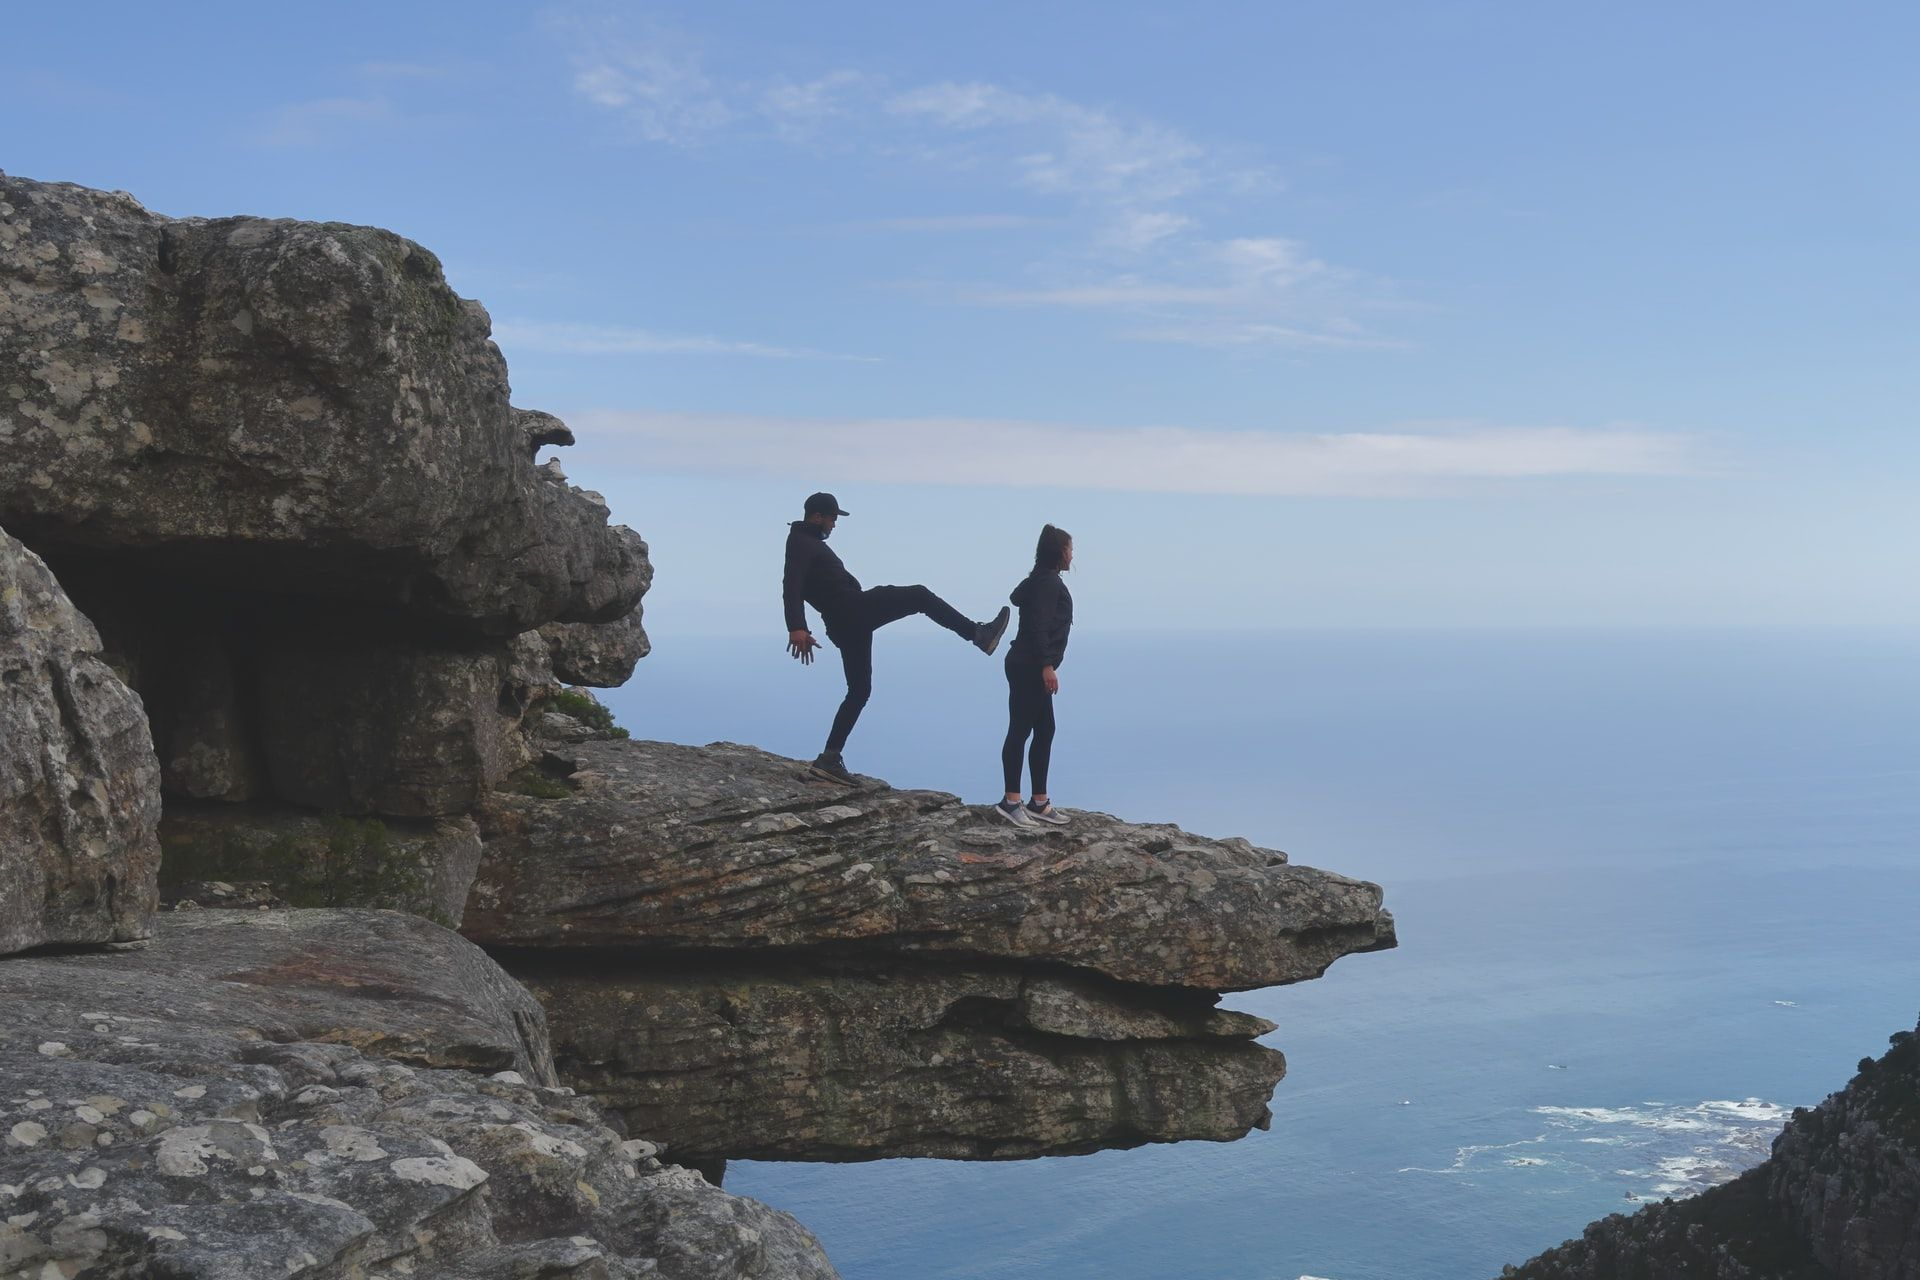 Table Mountain (Nature Reserve), Cape Town, South Africa . On a table of rock overlooking a valley, a man faces a woman with one leg up as if he is about to kick her off. She faces the valley.